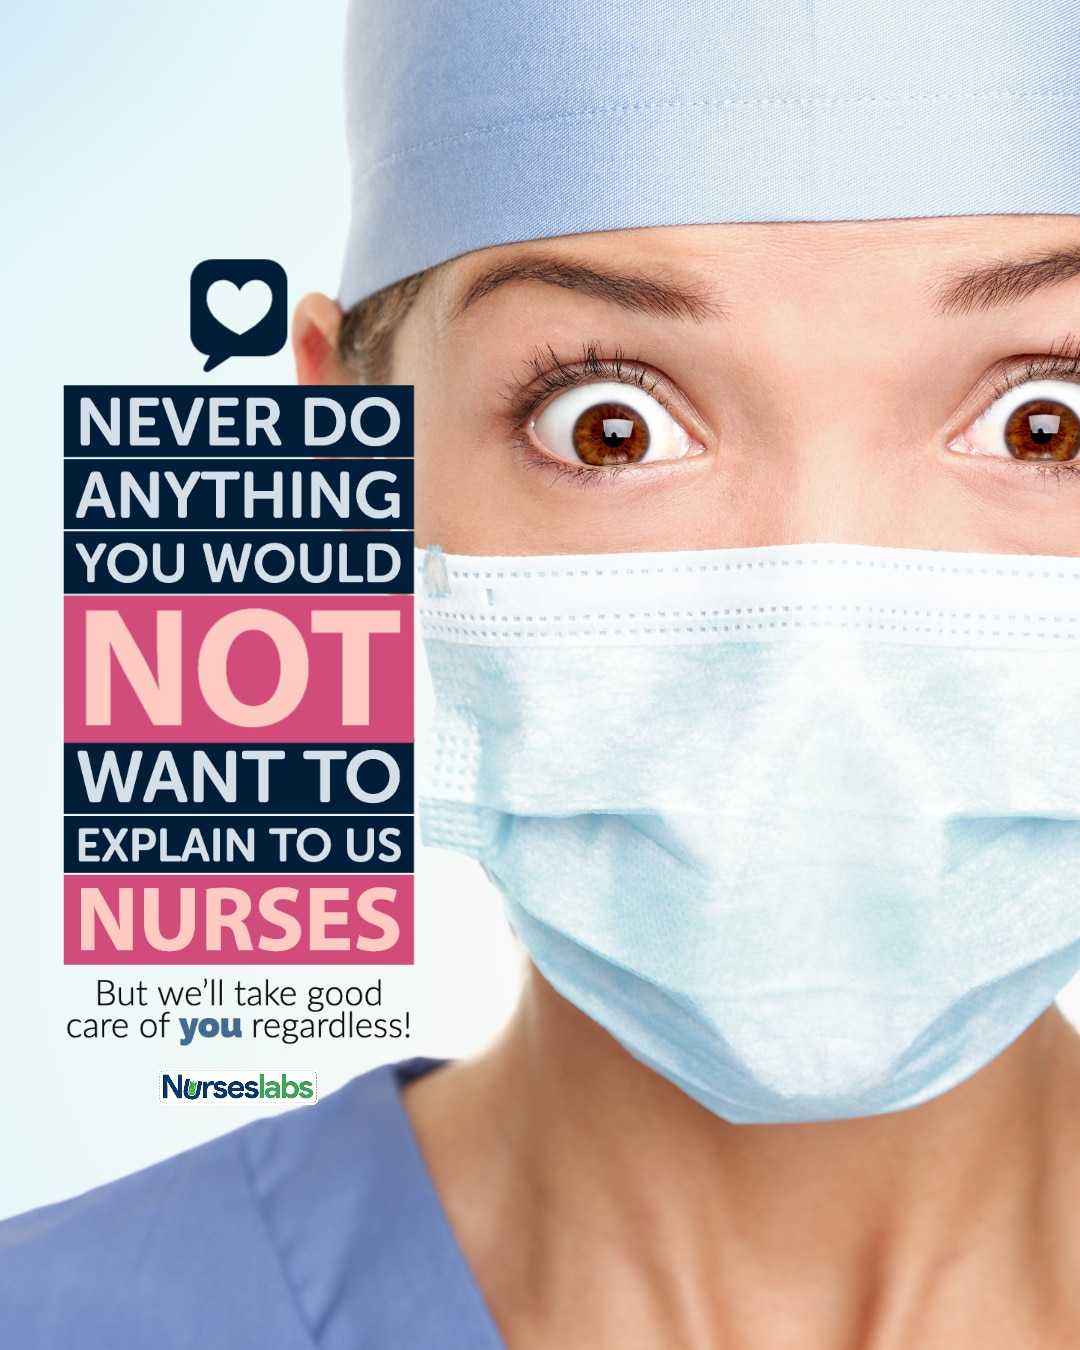 Never do anything you would not want to explain to us, nurses. But we'll take good care of you regardless!